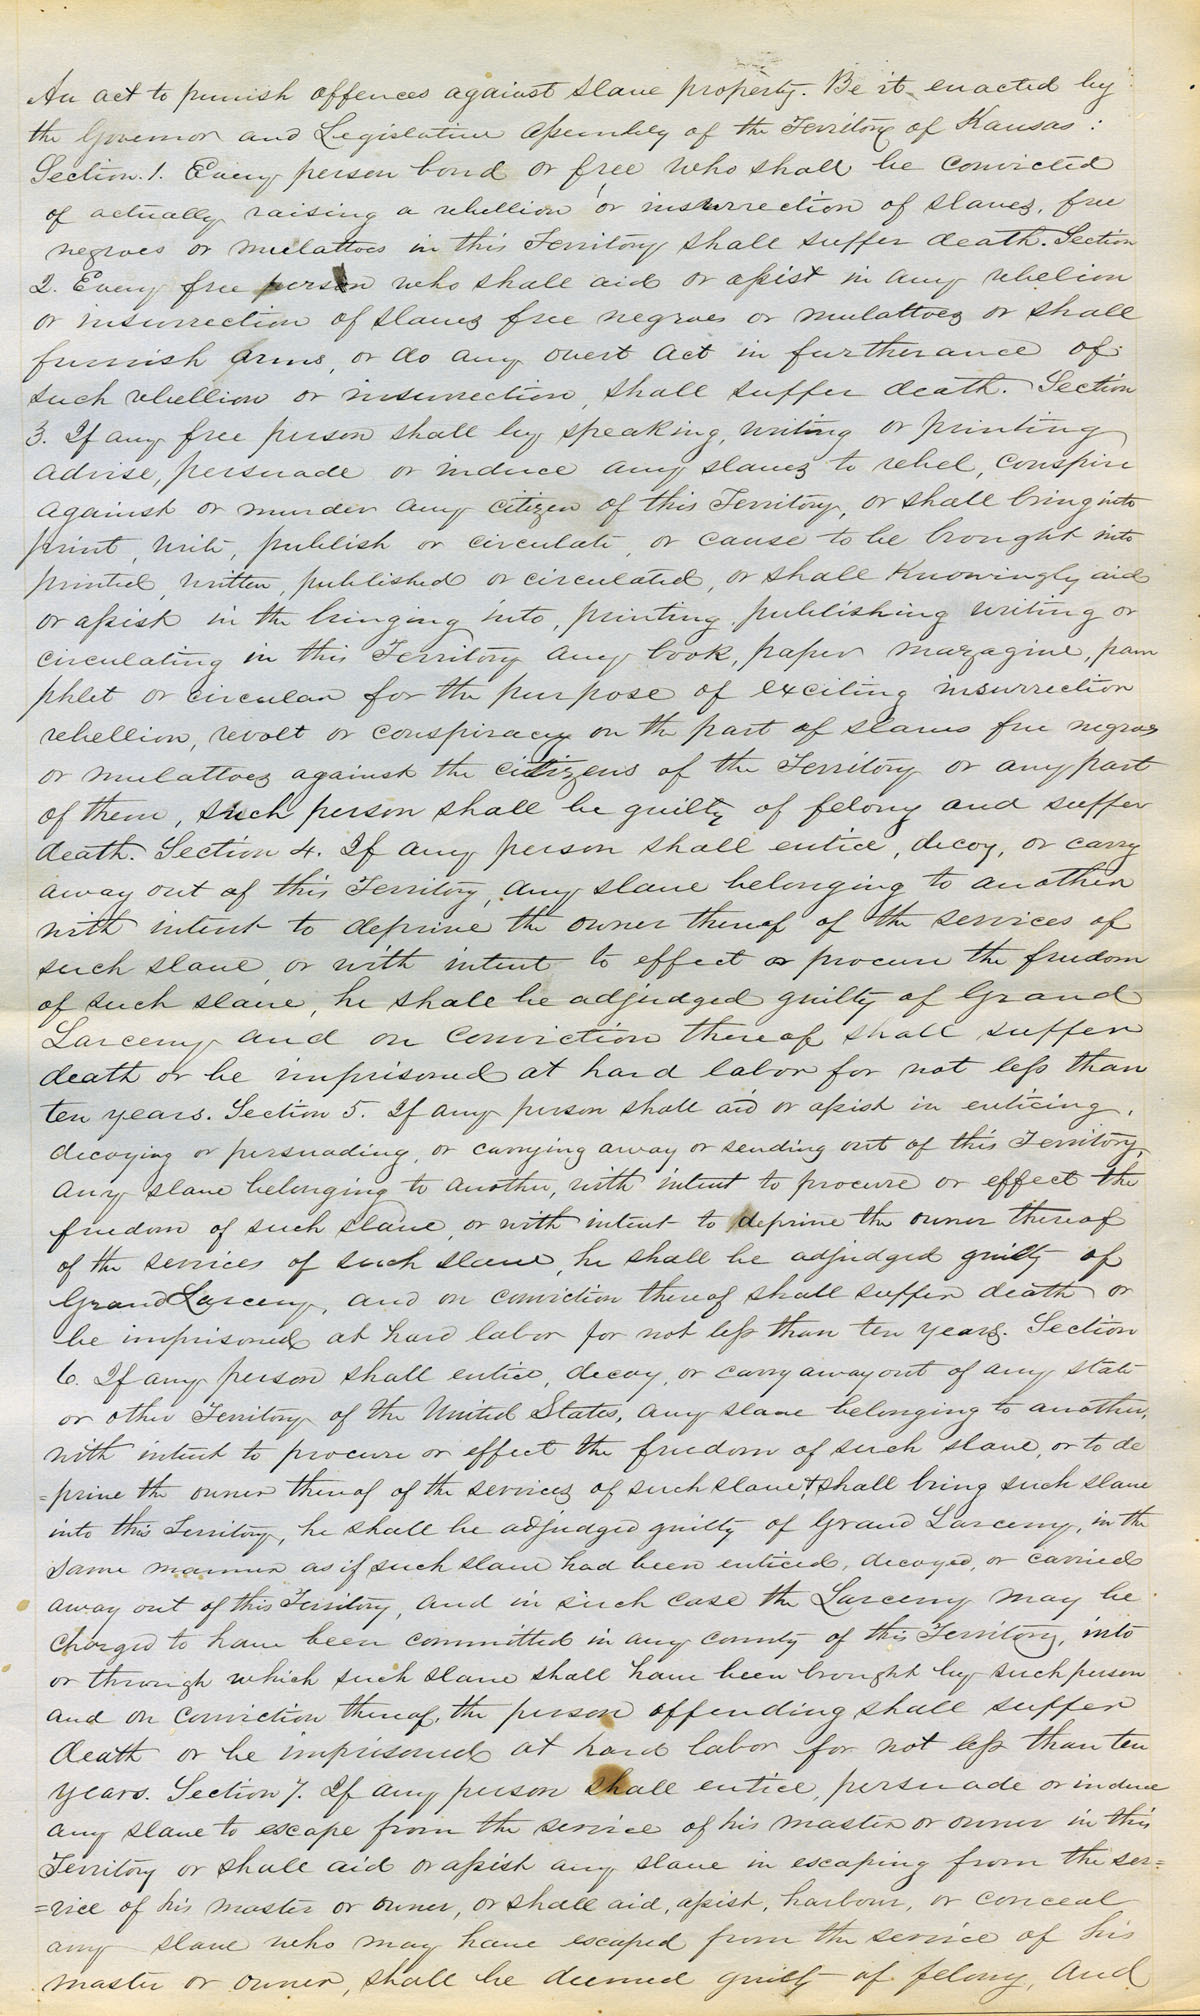 An act to punish offences against slave property